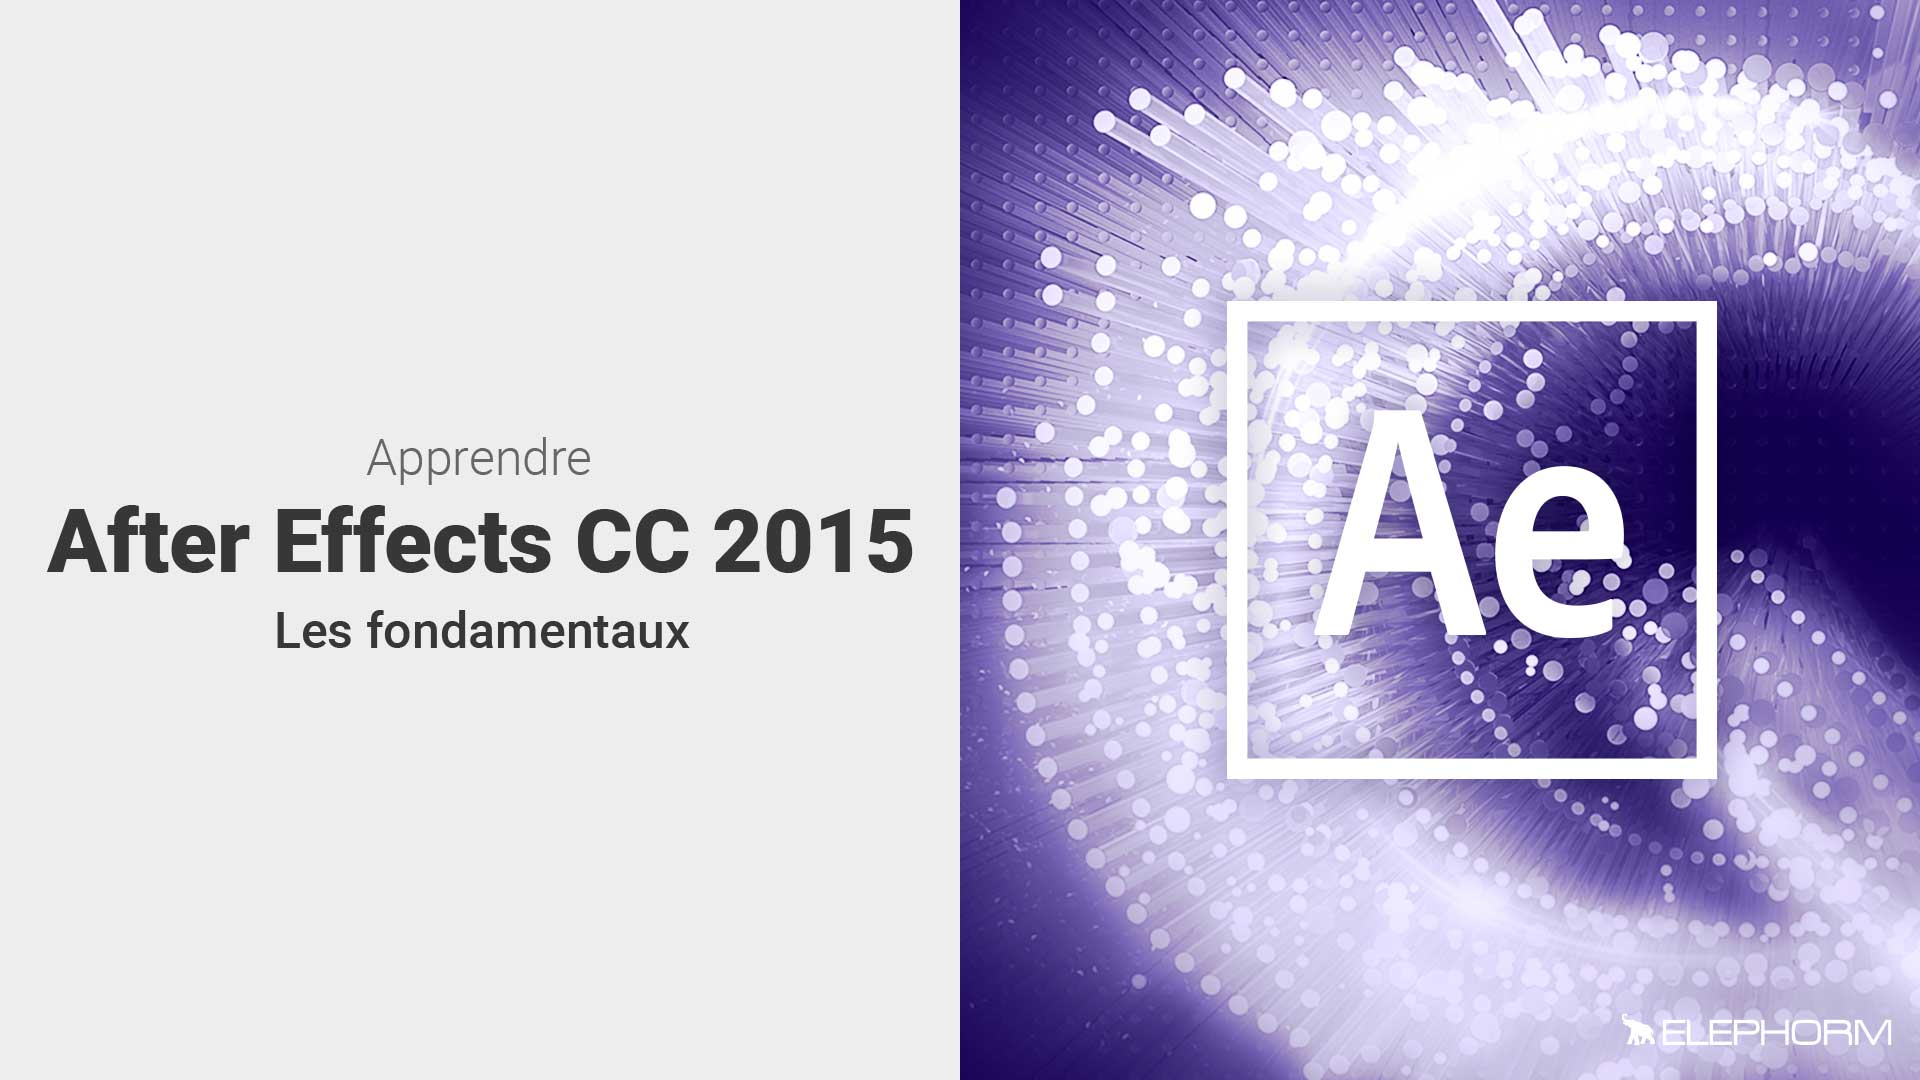 Apprendre After Effects CC 2015